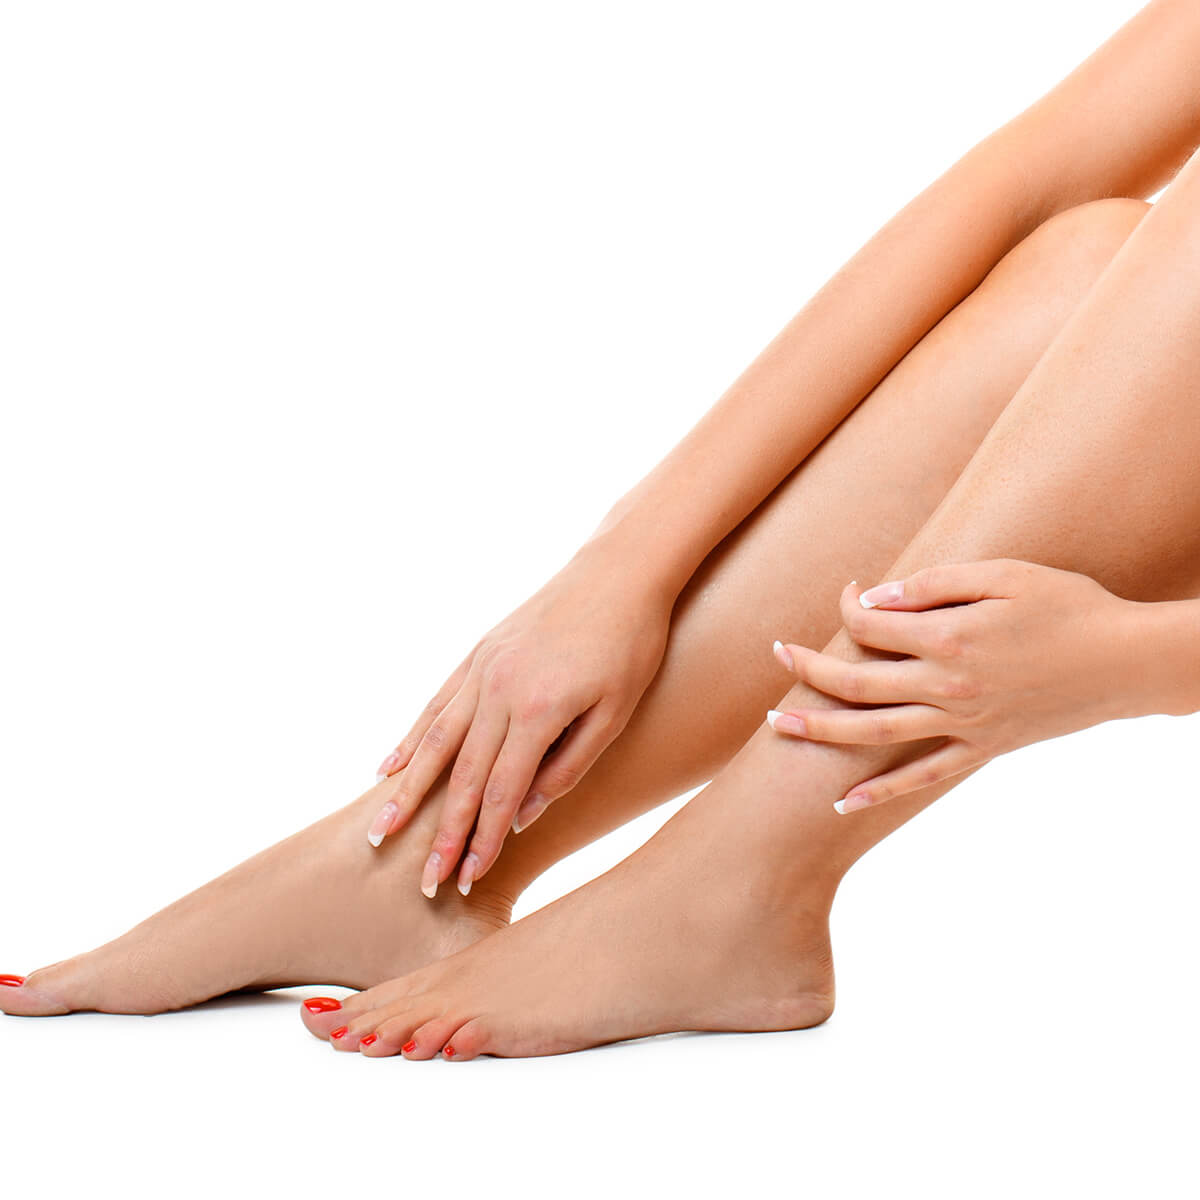 Treating Veins Disease for Pain and Swelling Relief in Encinitas, CA Area